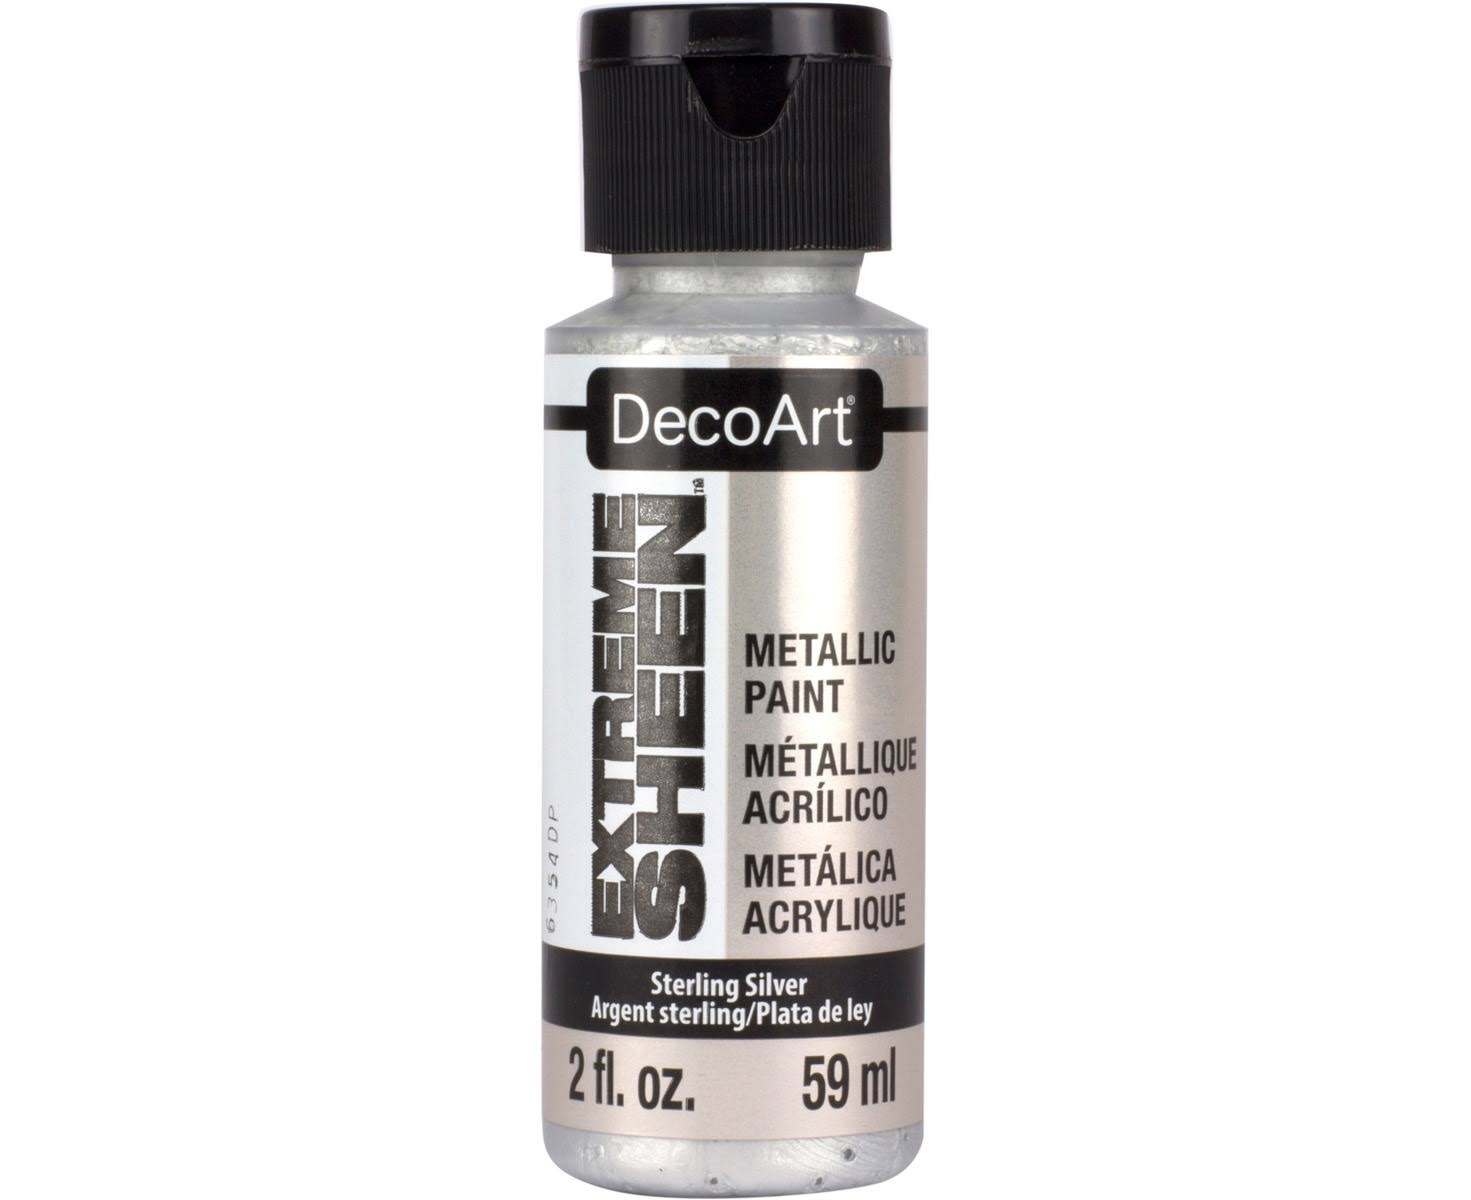 Decoart Extreme Sheen Metallic Paint - Sterling Silver, 2oz